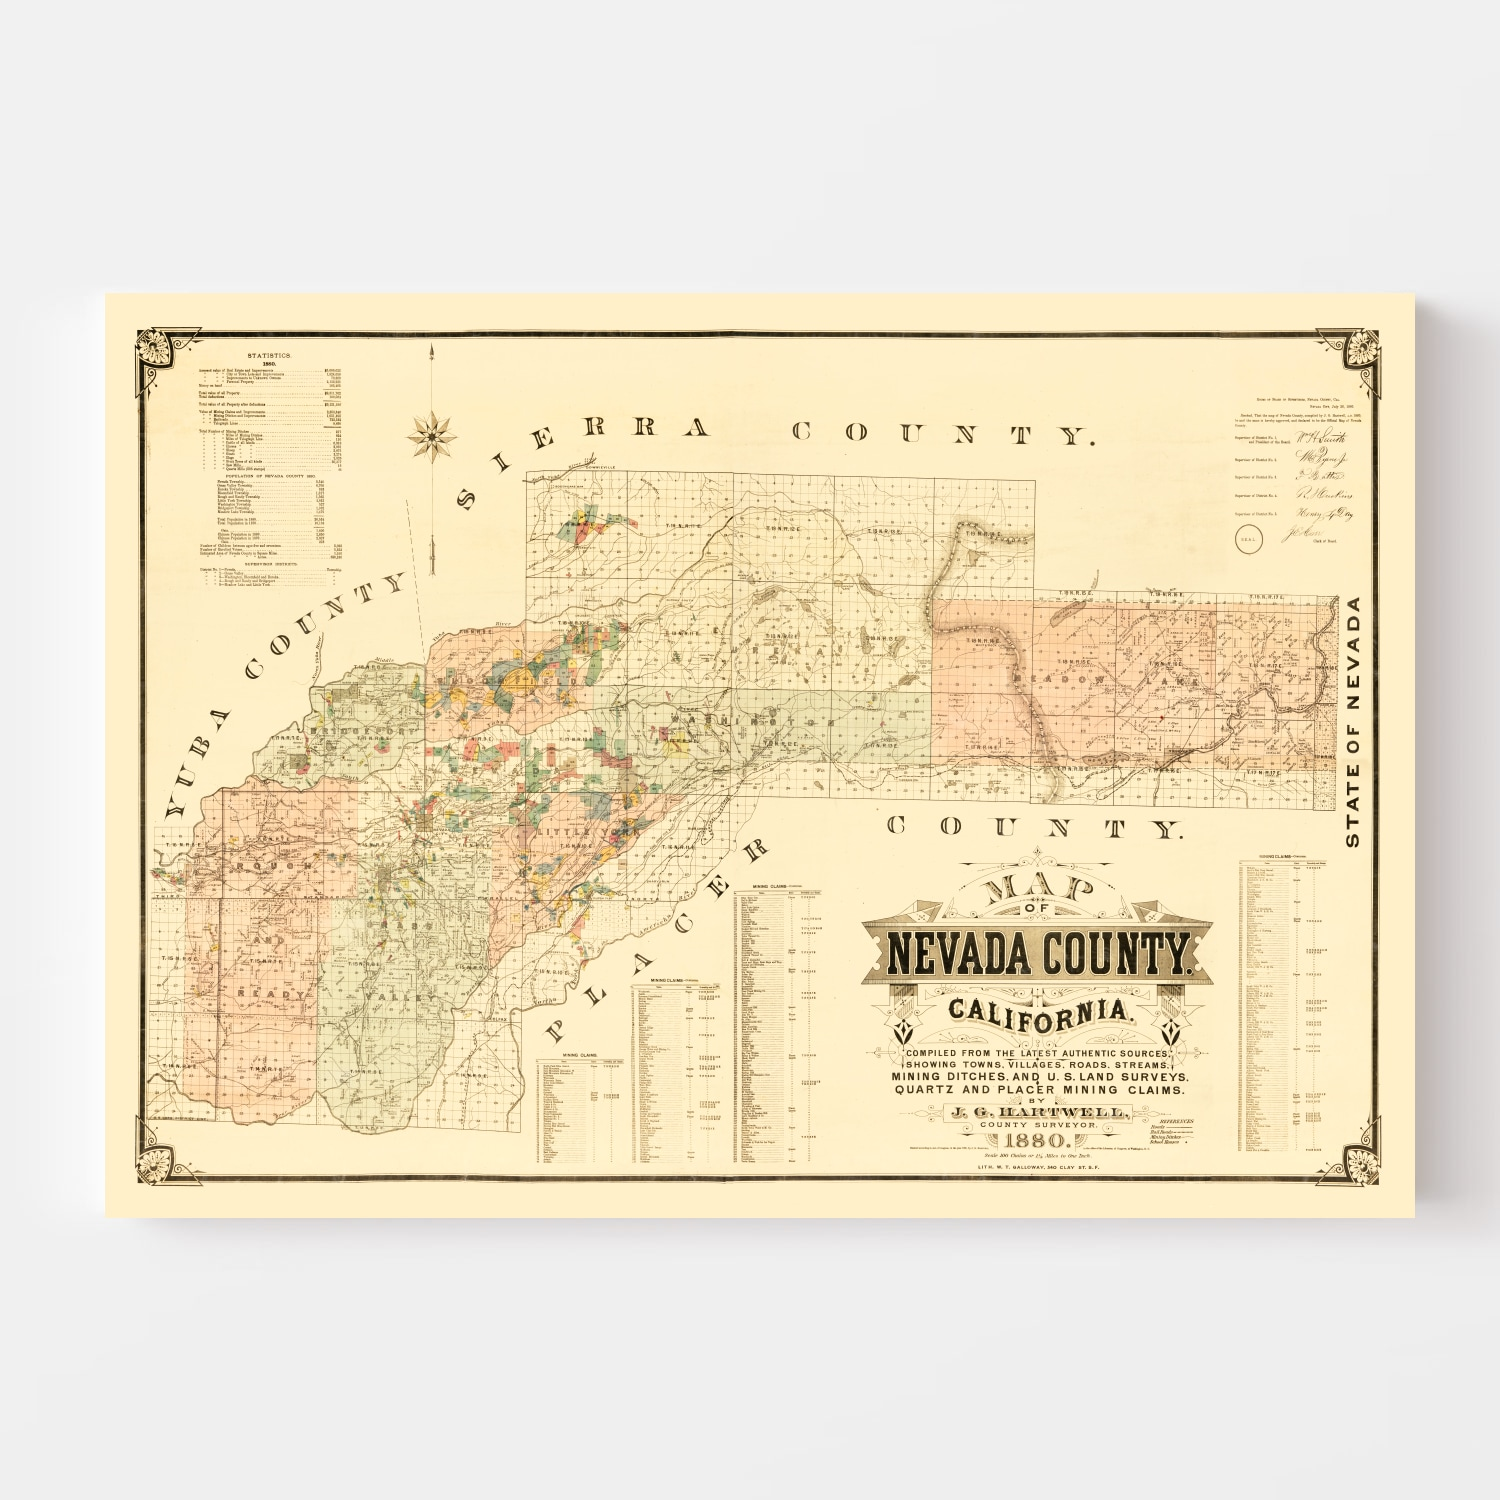 Vintage Map of Nevada County, California 1880